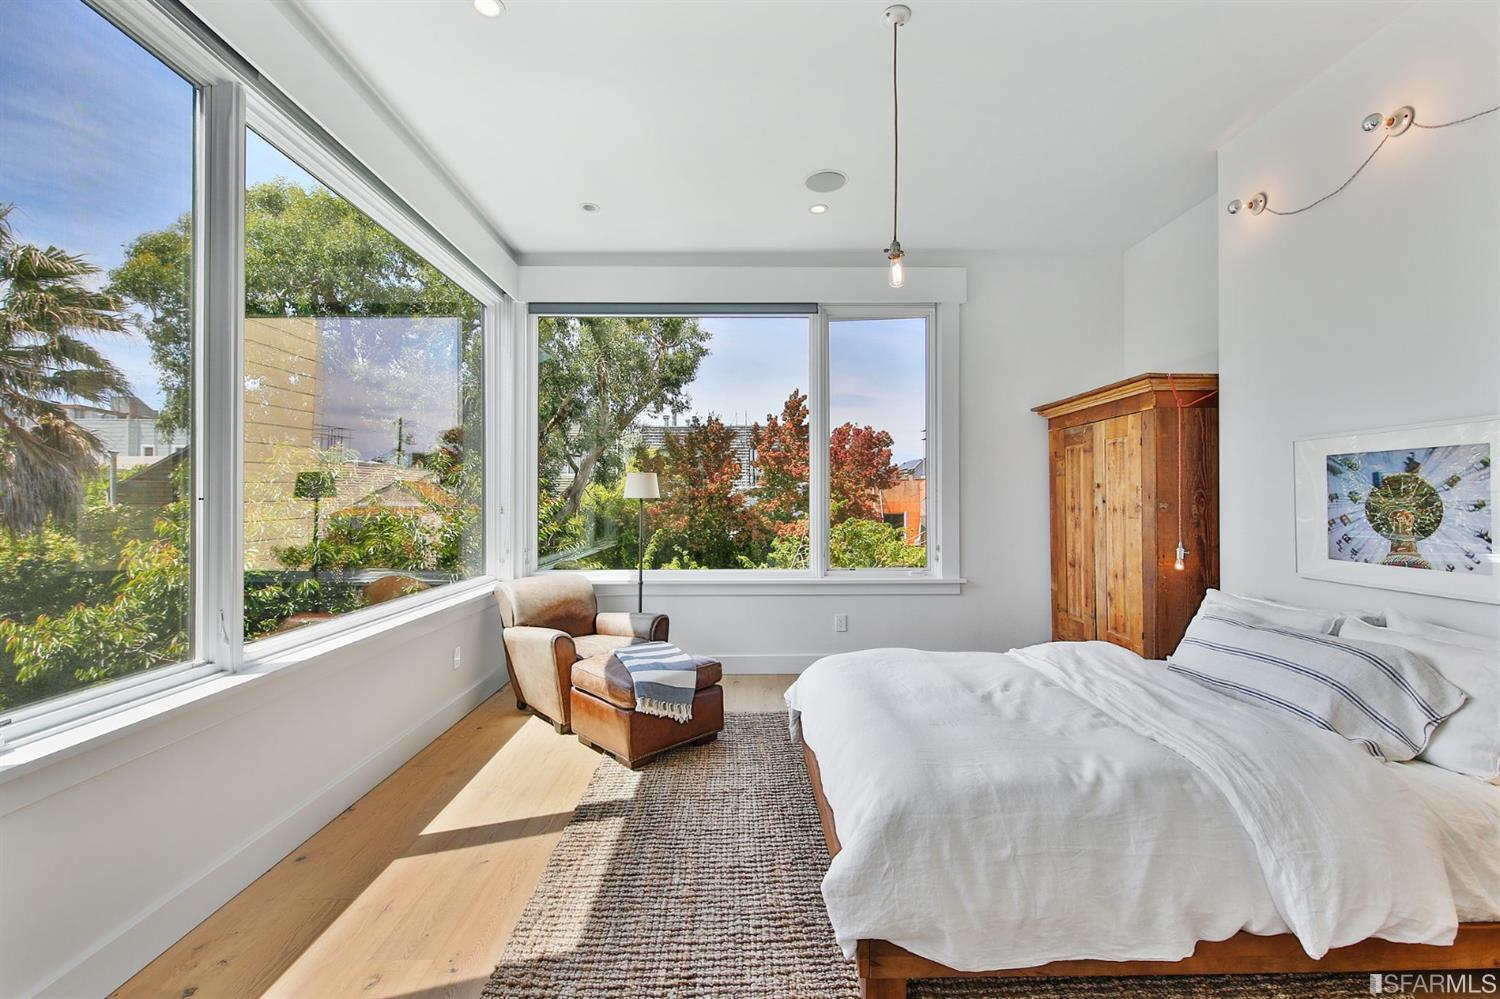 Bedroom with large windows letting in lots of natural sunlight